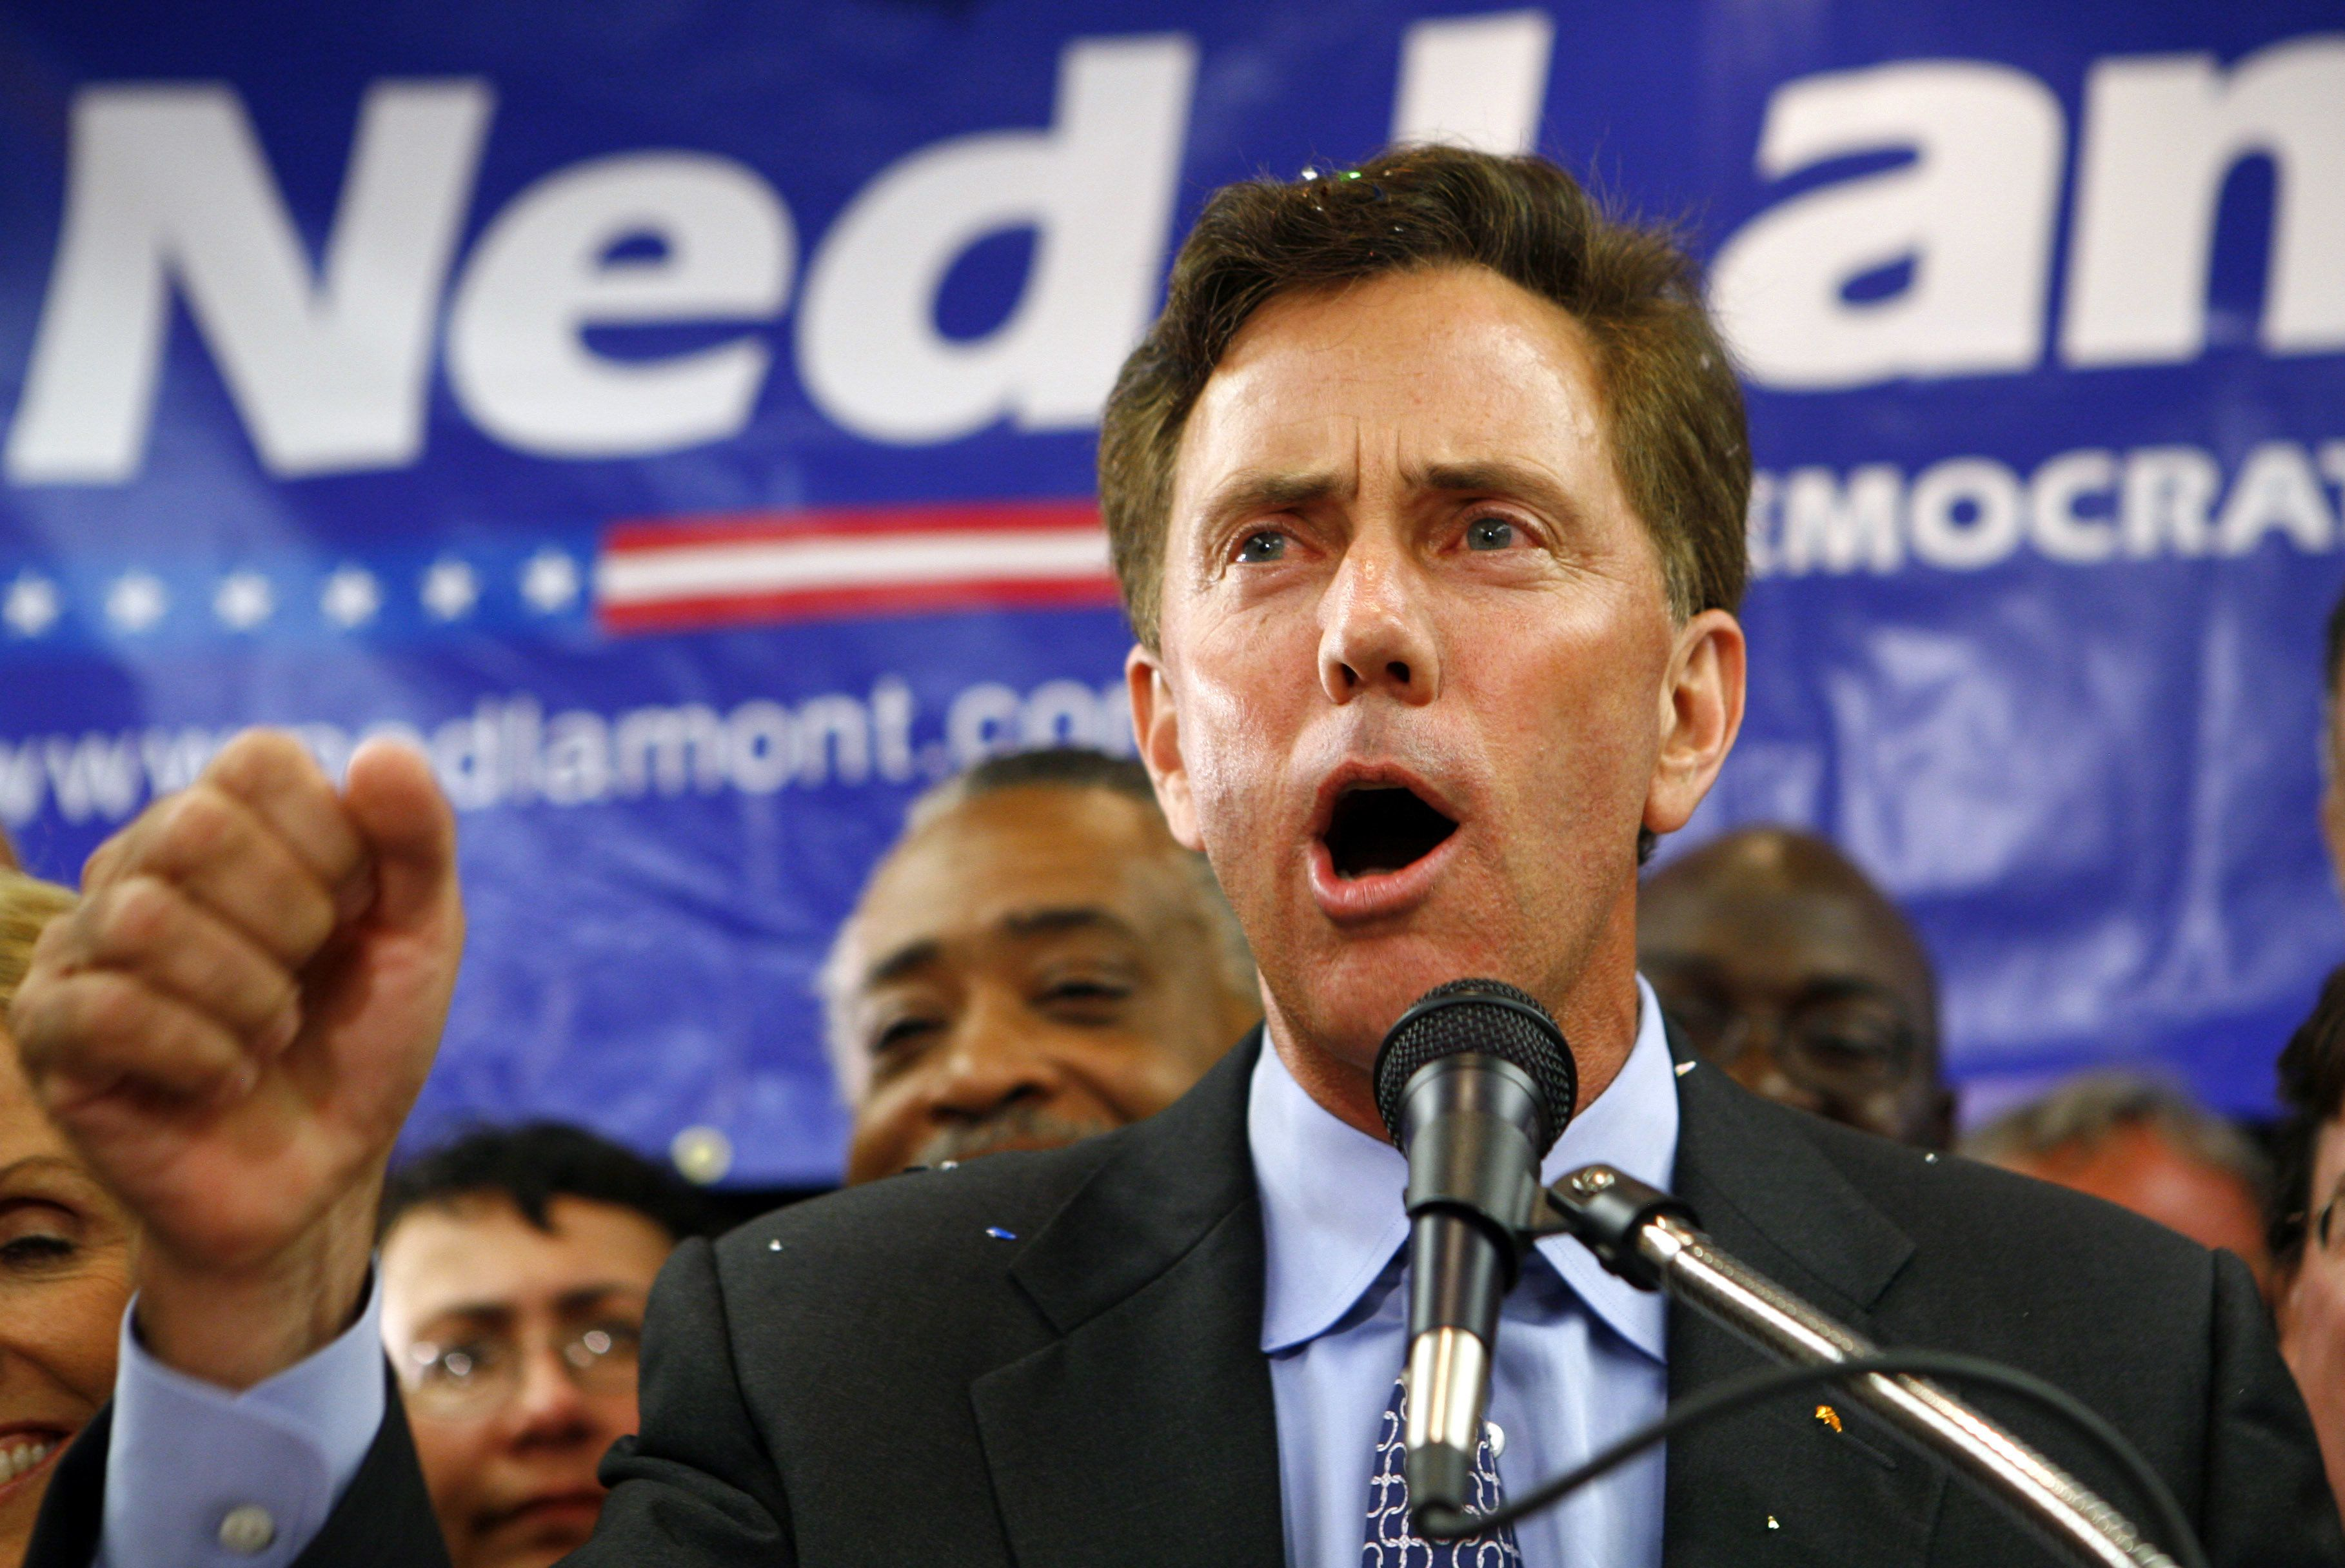 Millionaire cable television executive Ned Lamont addresses his supporters after winning the Connecticut Democratic primary election for U.S. Senate at his election night headquarters in Meriden, Connecticut, August 8, 2006. Lamont defeated three-term Senate veteran and one-time Democratic vice presidential candidate Joseph Lieberman.  REUTERS/Mike Segar (UNITED STATES)